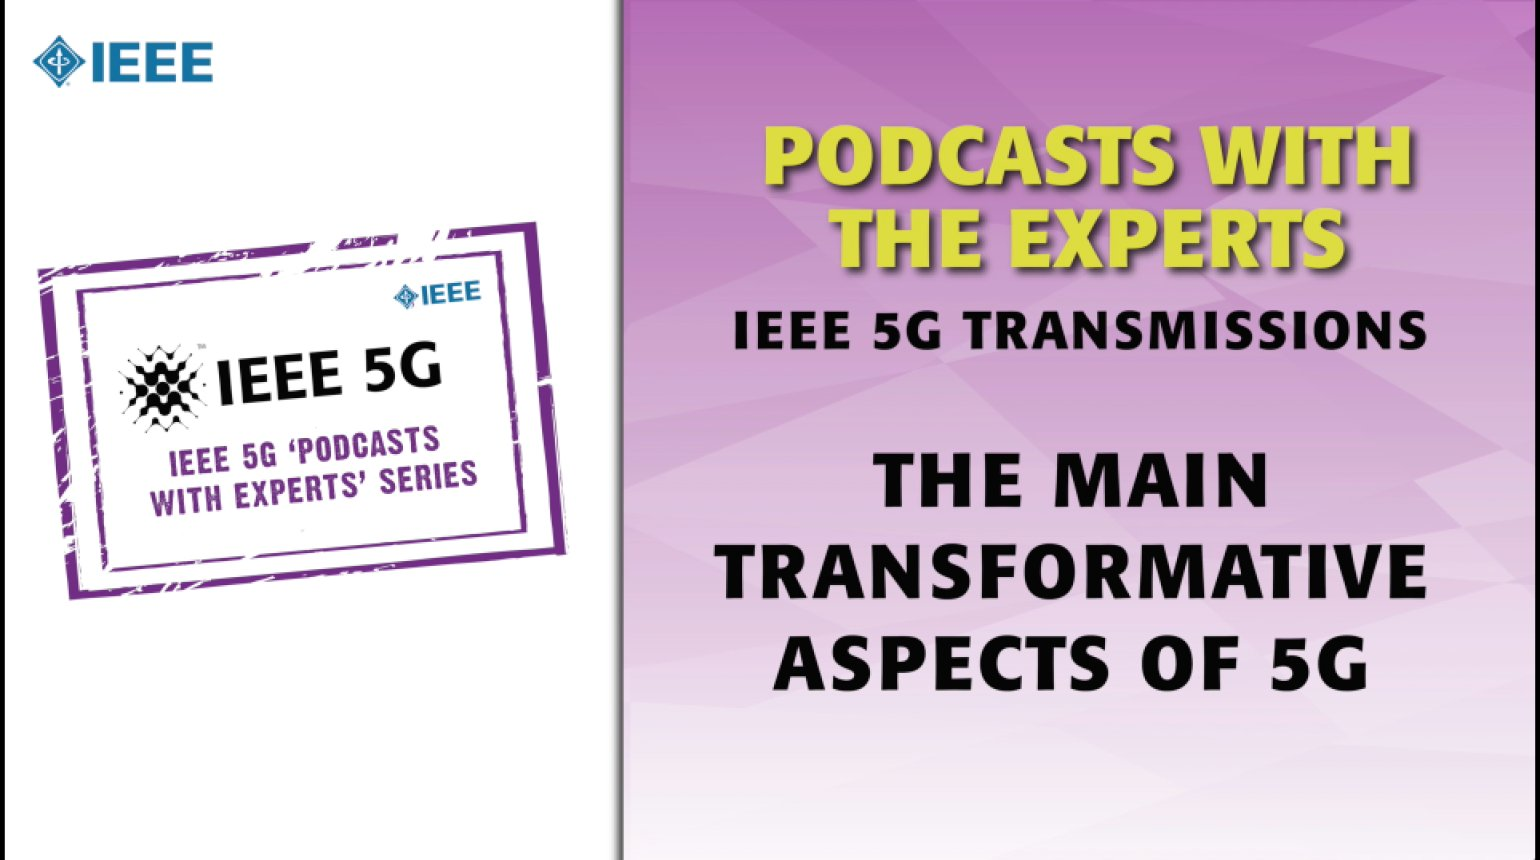 IEEE 5G Podcast with the Experts: The Main Transformative Aspects of 5G